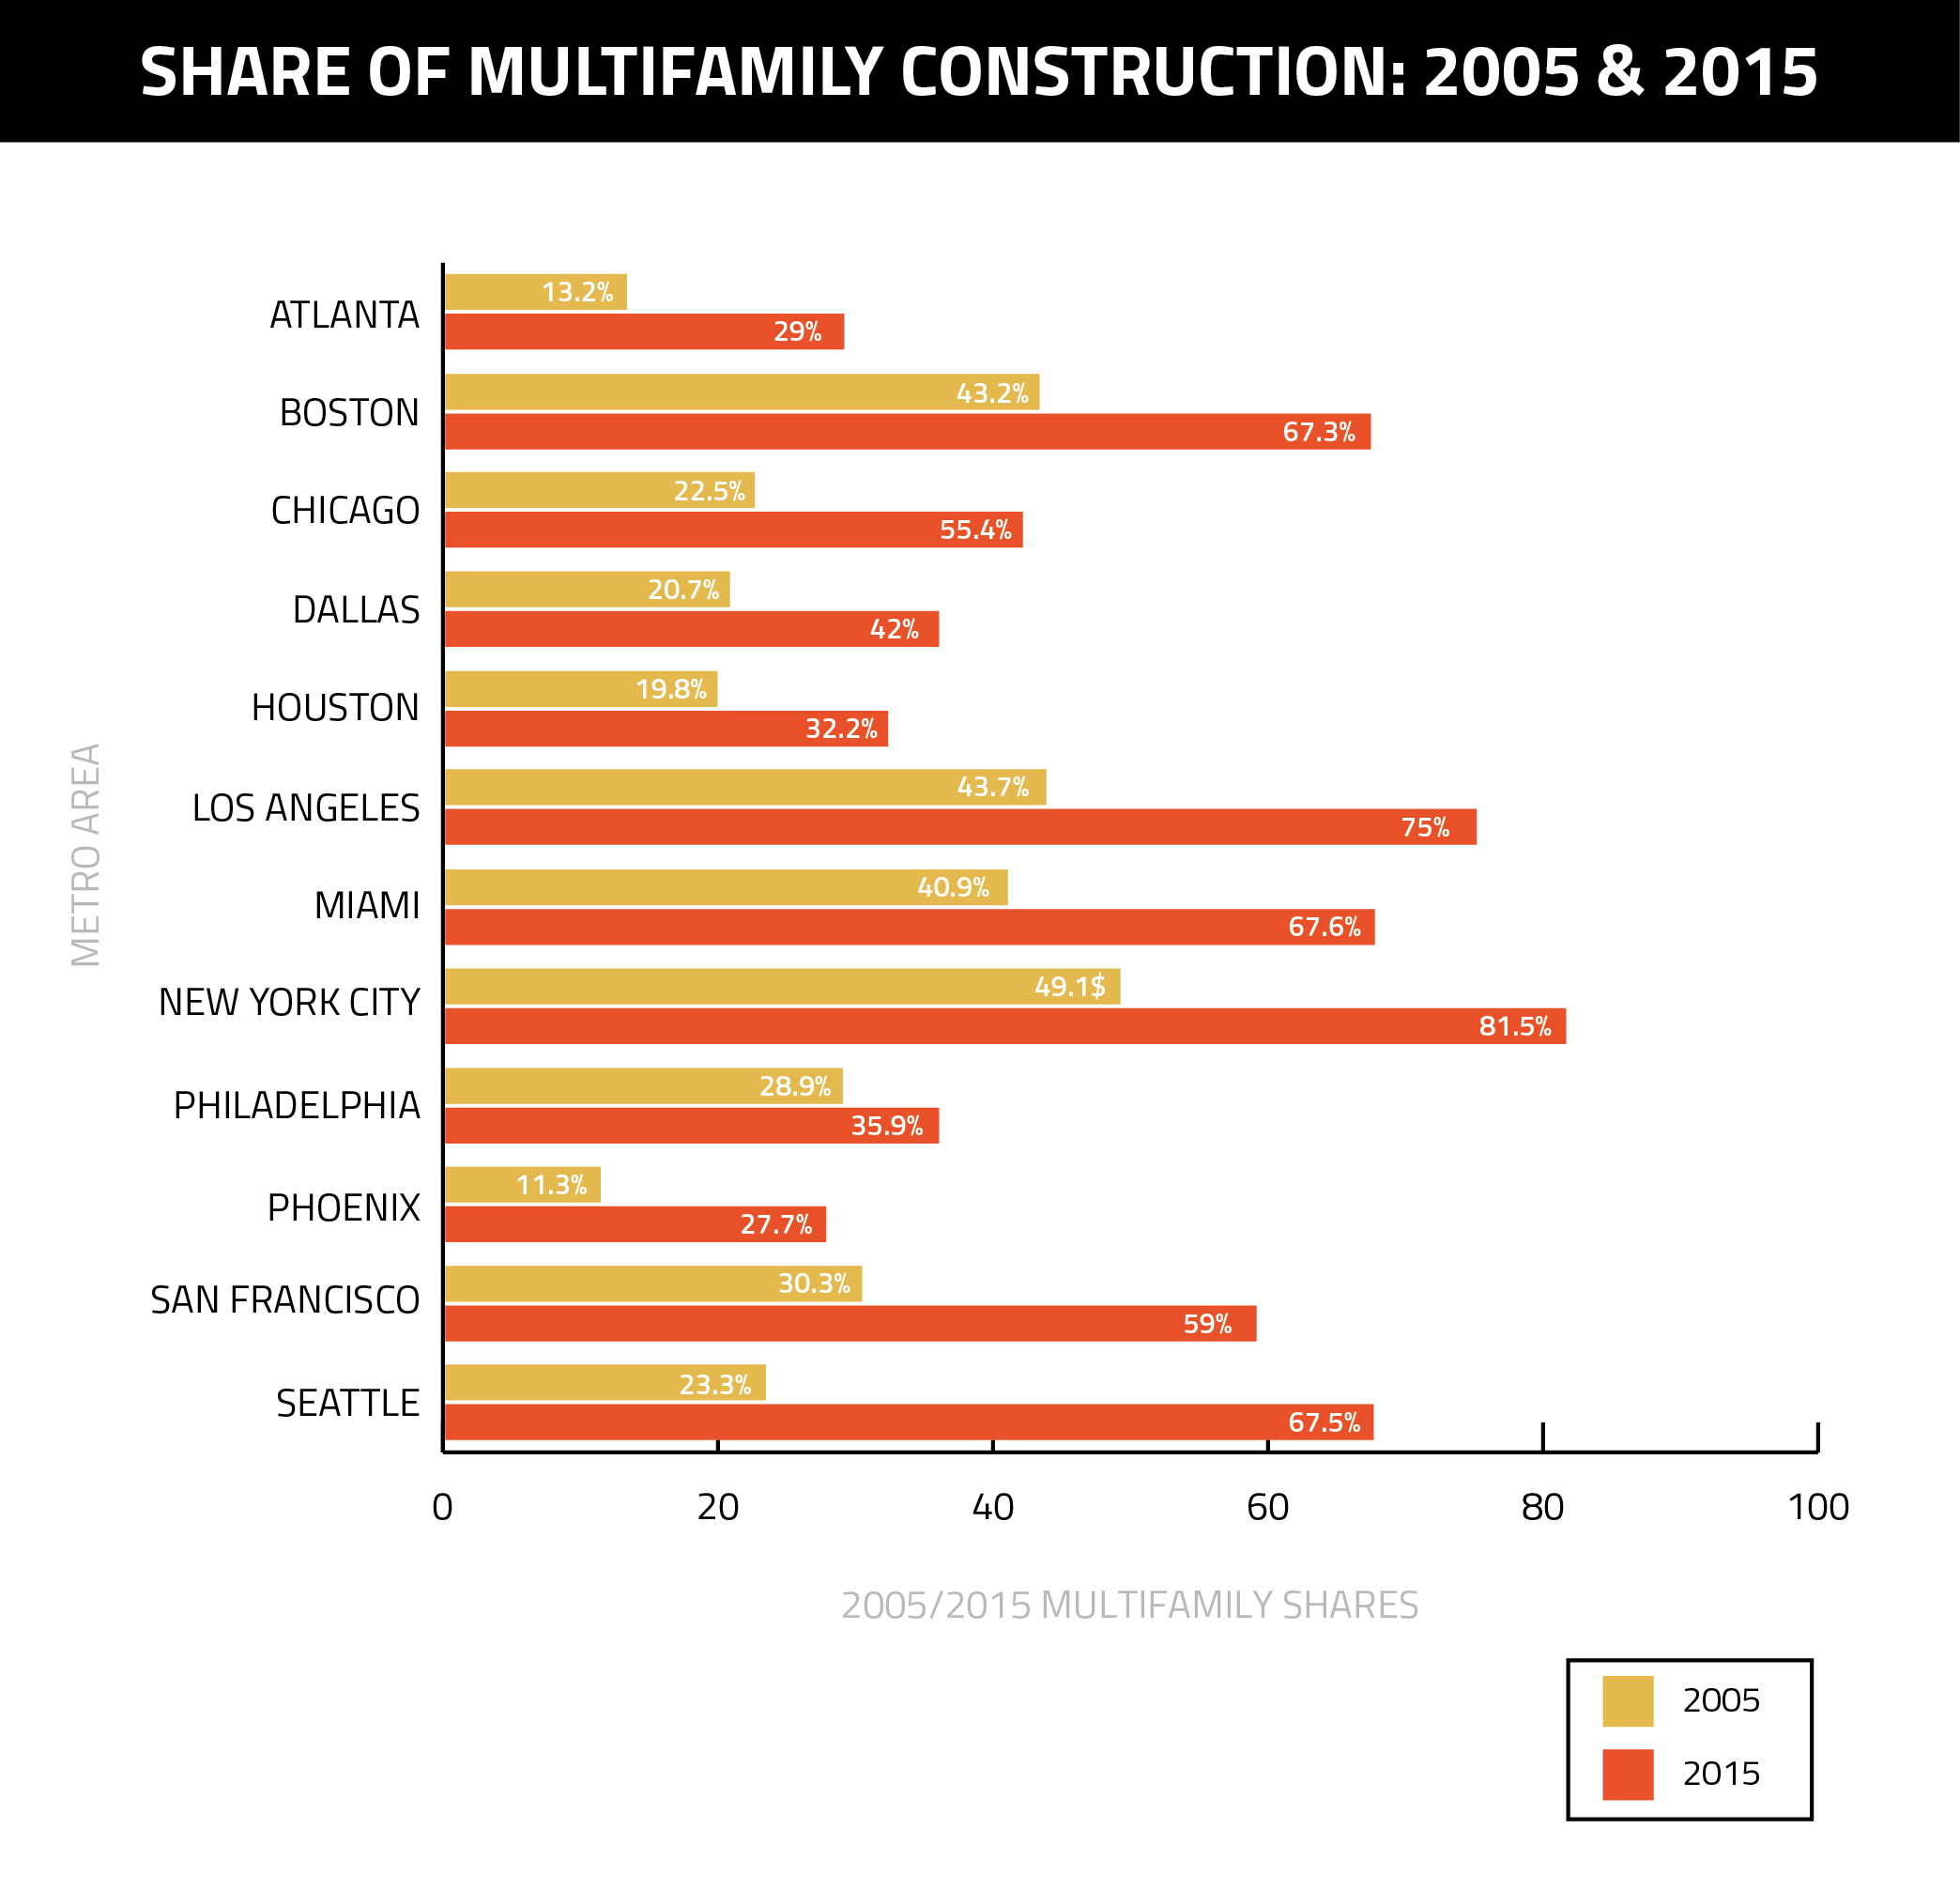 Share-of-Multifamily-Construction